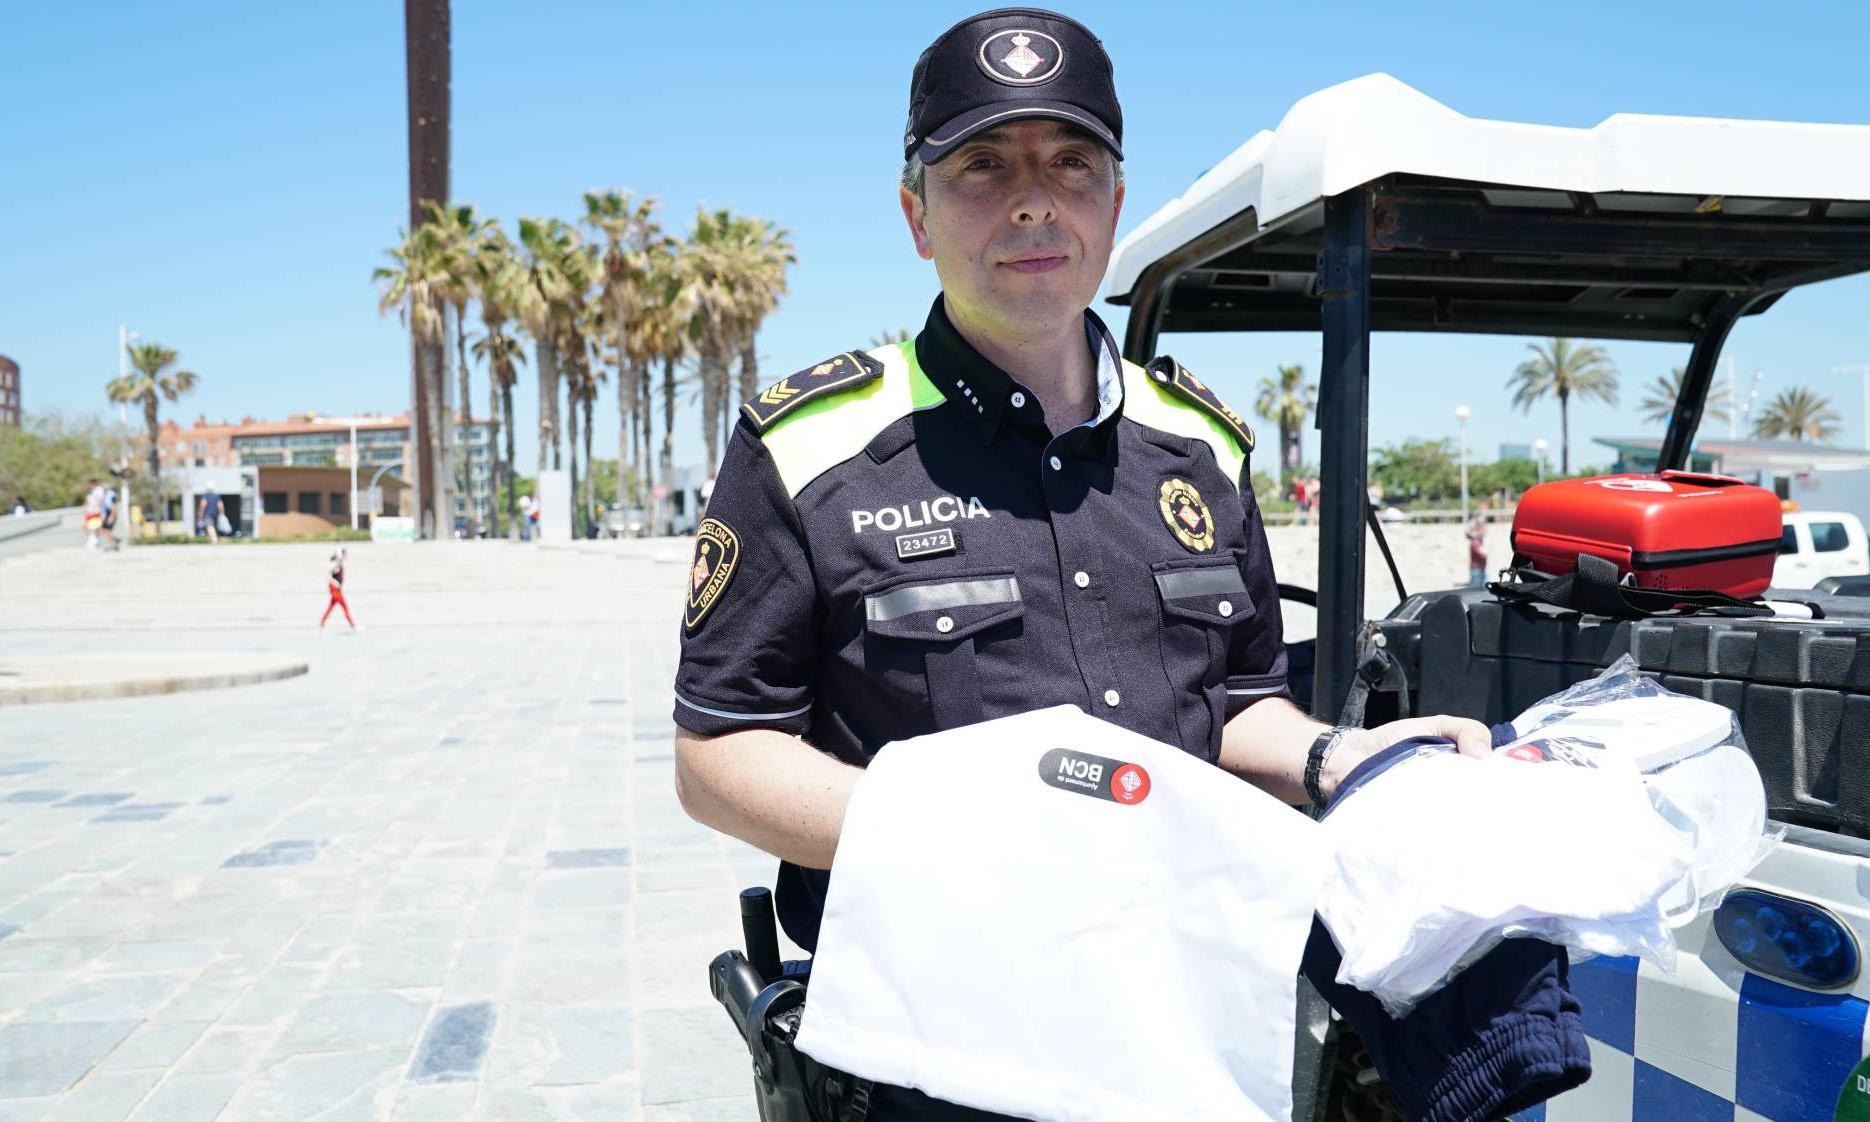 Barcelona police spare bathers' blushes with clothing 'robbery kits'